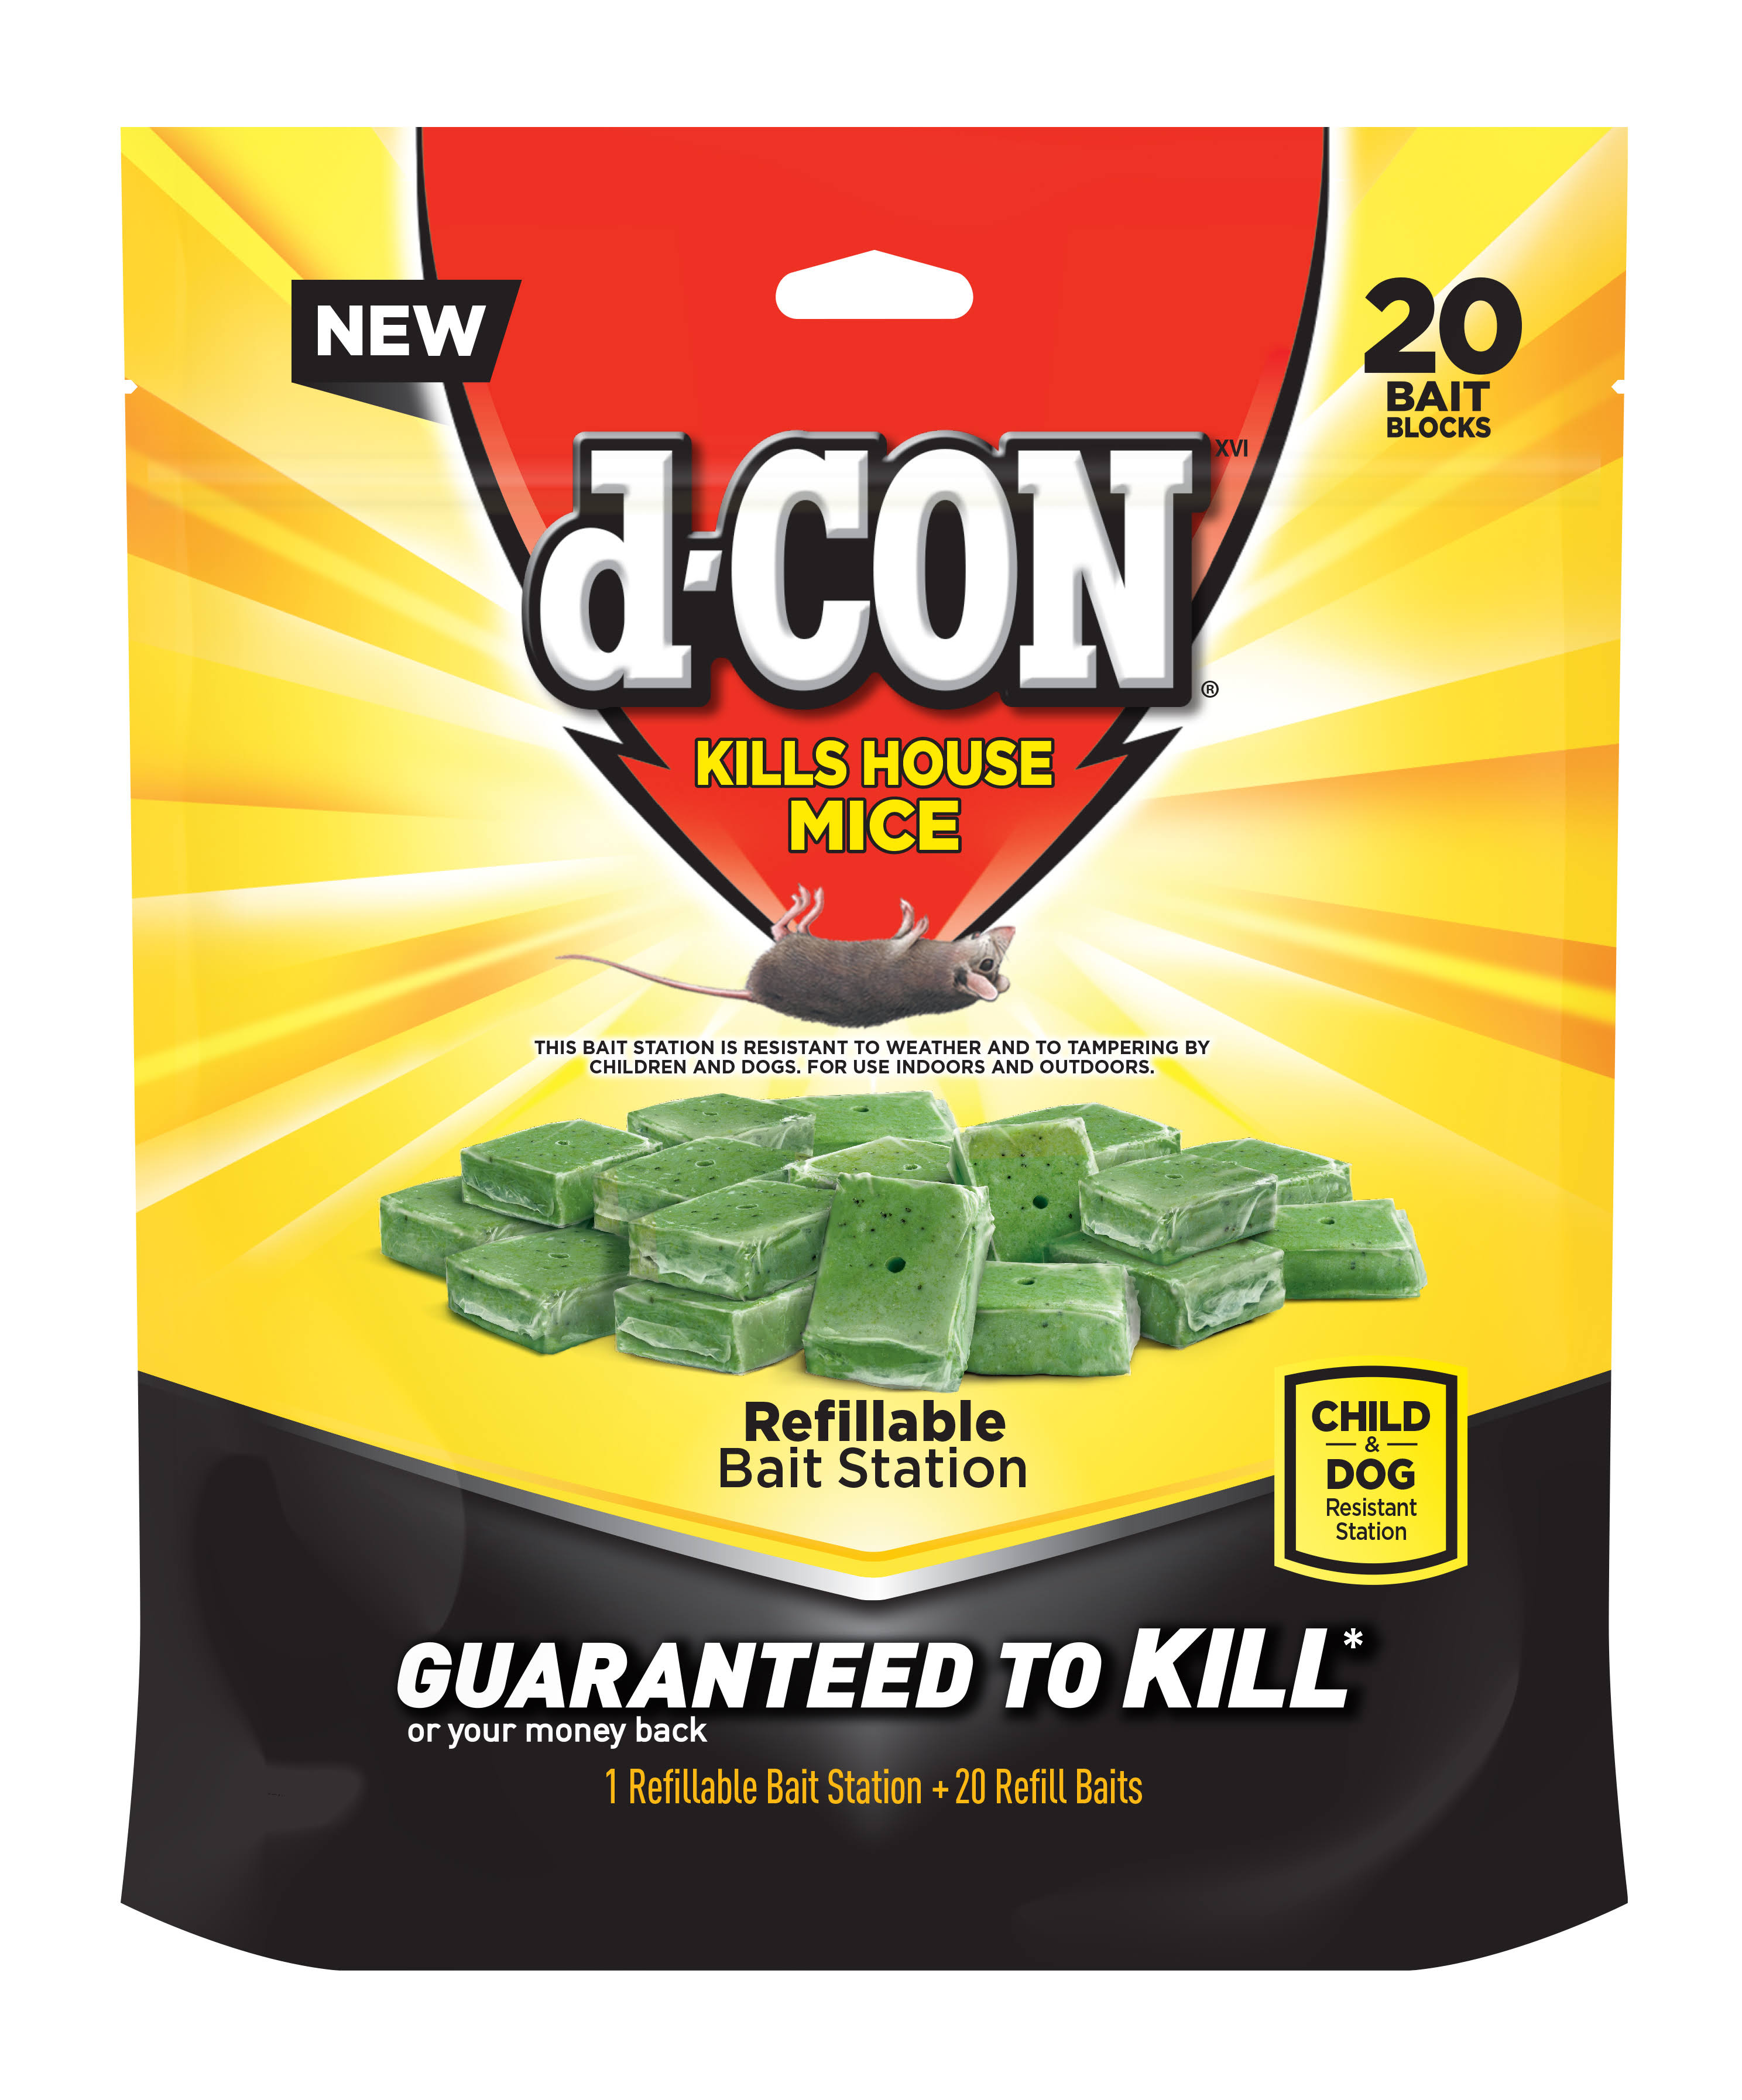 D-Con Refillable Bait Station - 24 Bait Refills